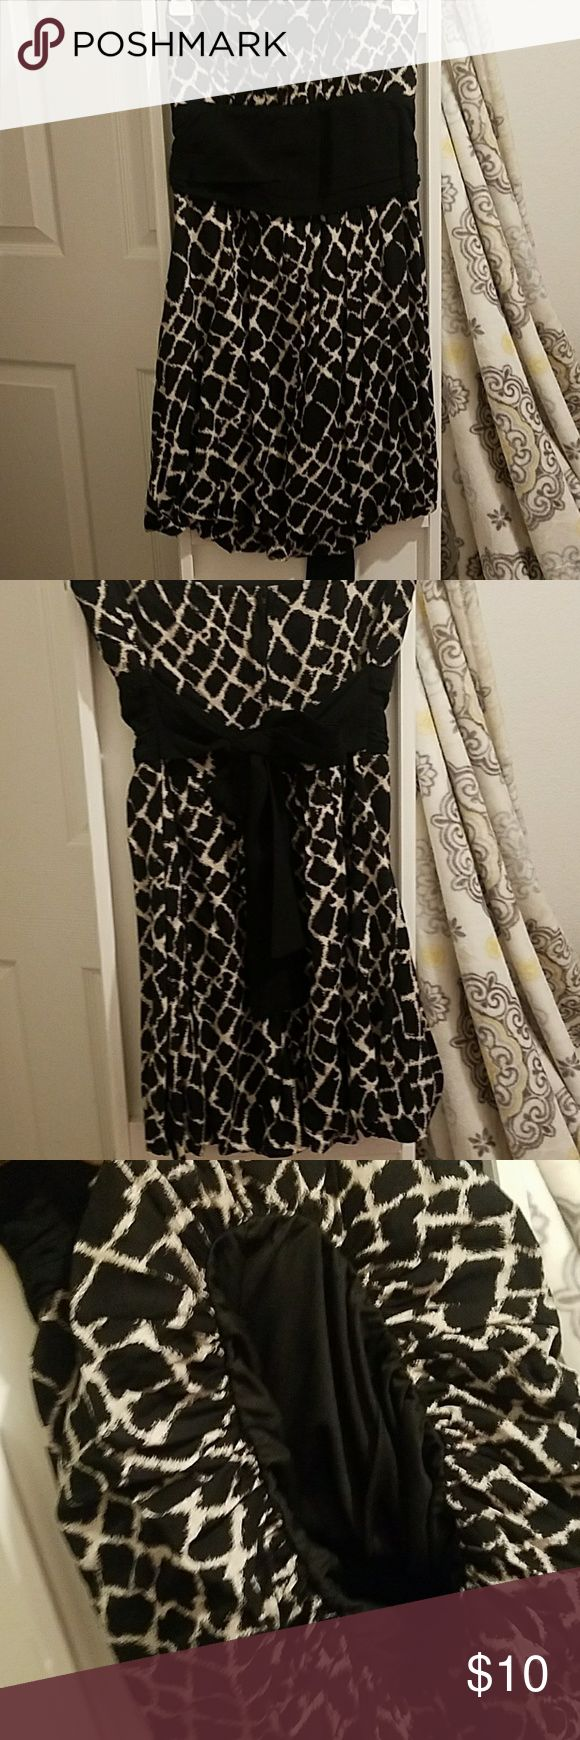 Tube top dress Tube top dress only worn once. True to size Medium. Styles For Less Dresses Backless